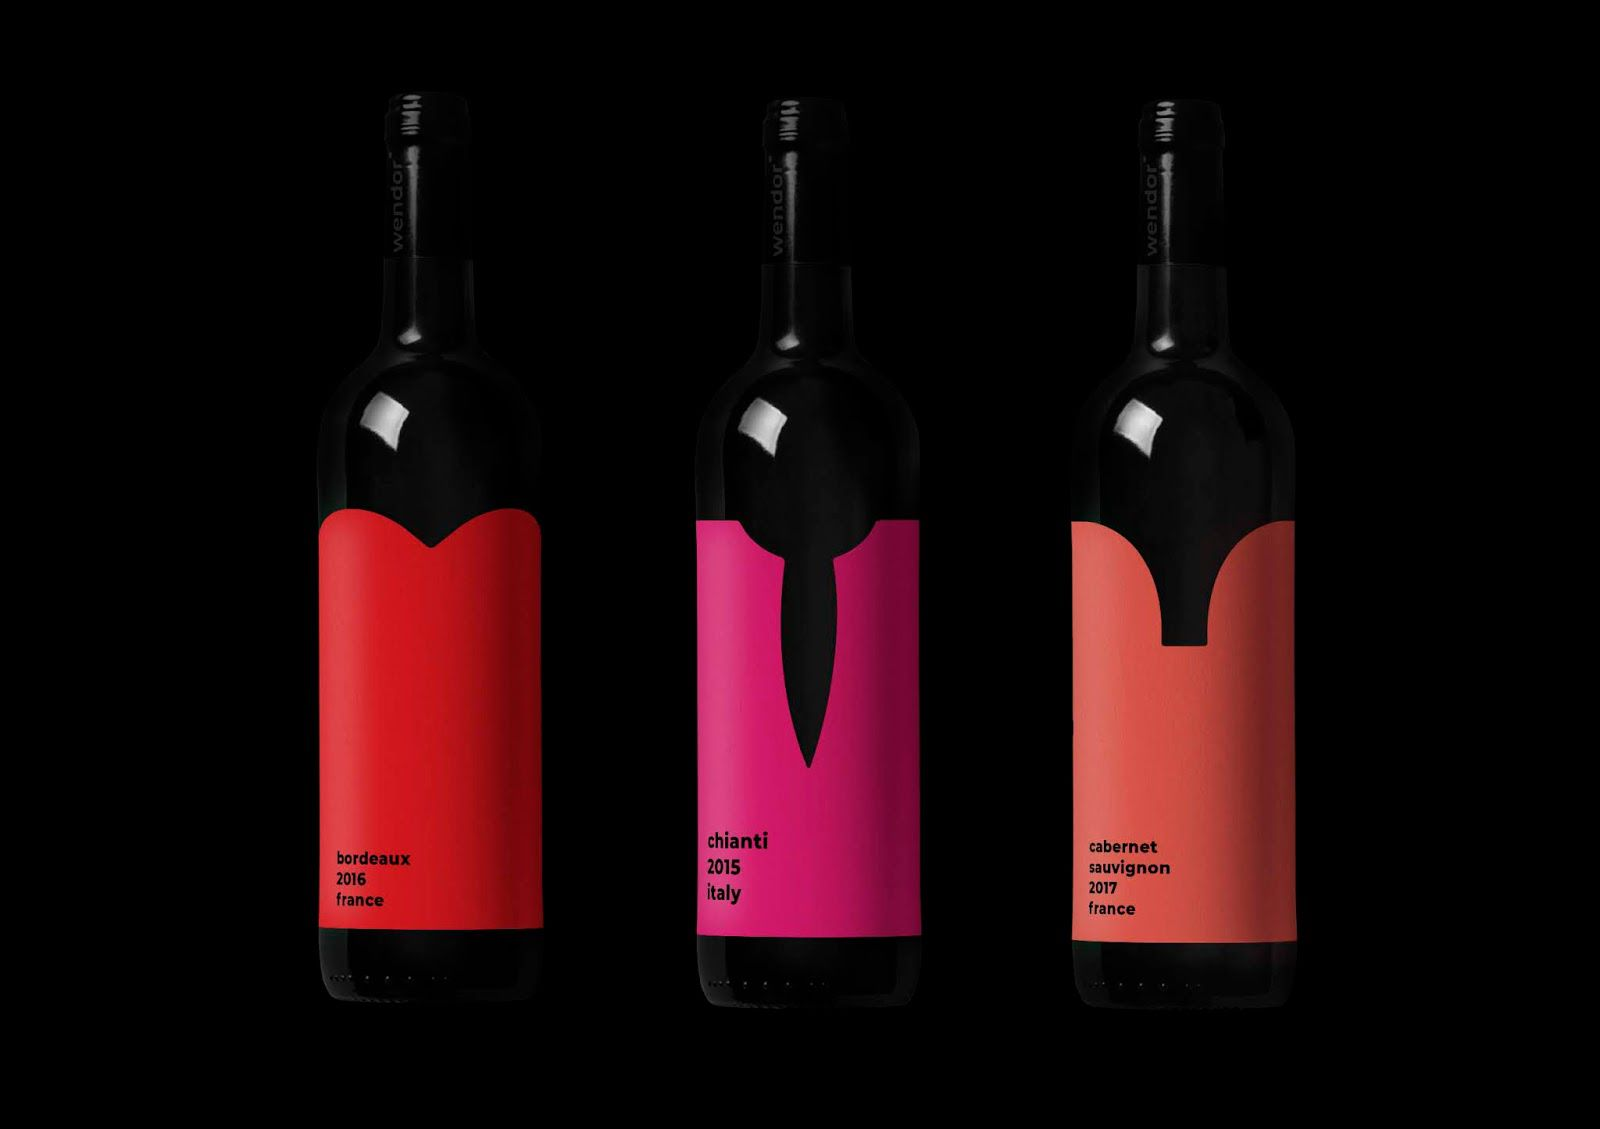 Low neckline (vin rouge) I Design (projet étudiant) : Yulia Agafonova (HSE Art and Design School), Russie (mai 2020)